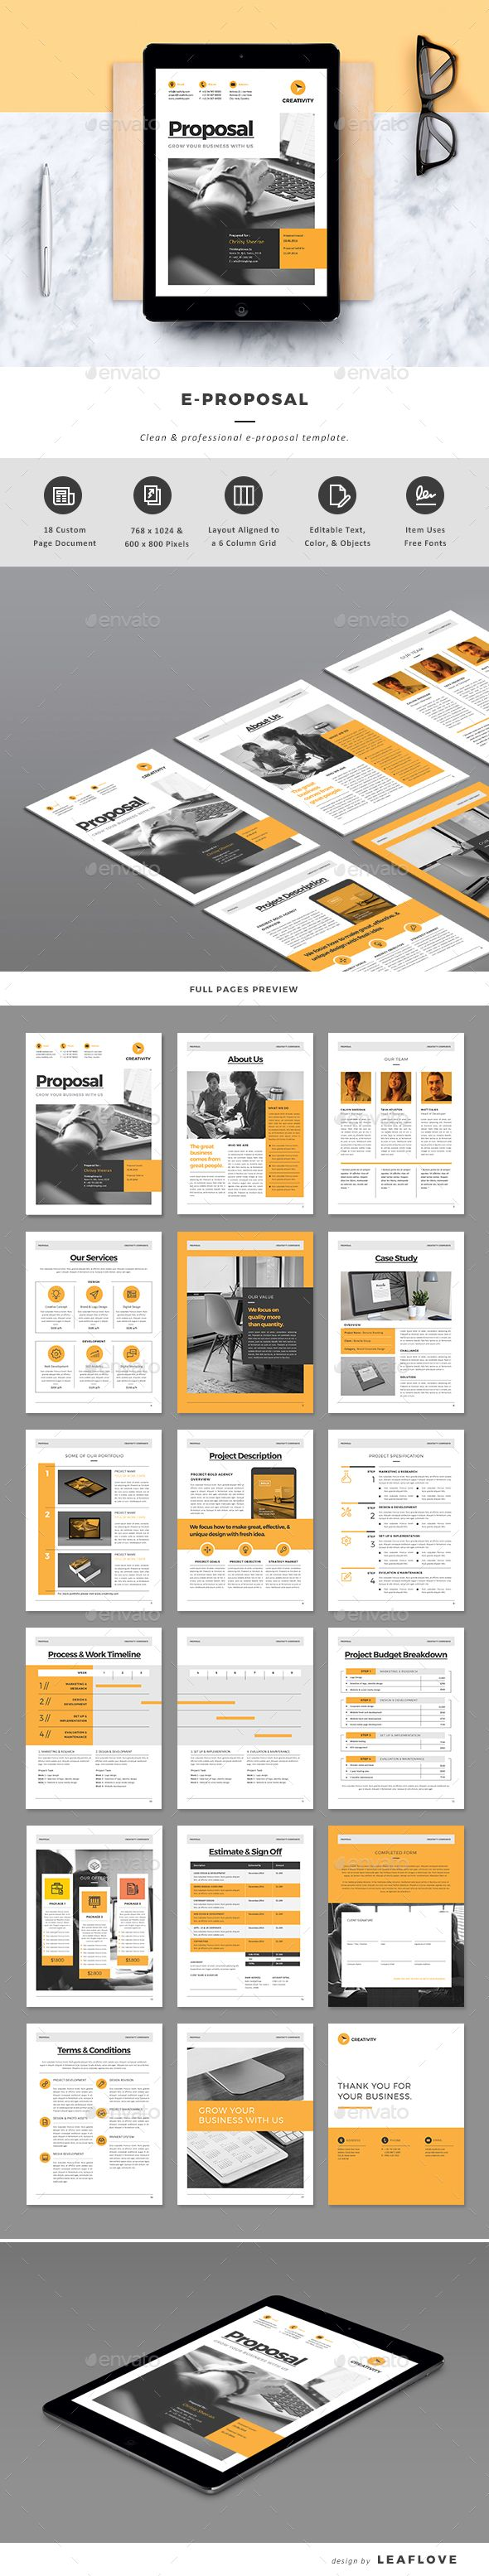 E-Proposal Template InDesign INDD | Design Gráfico | Pinterest ...